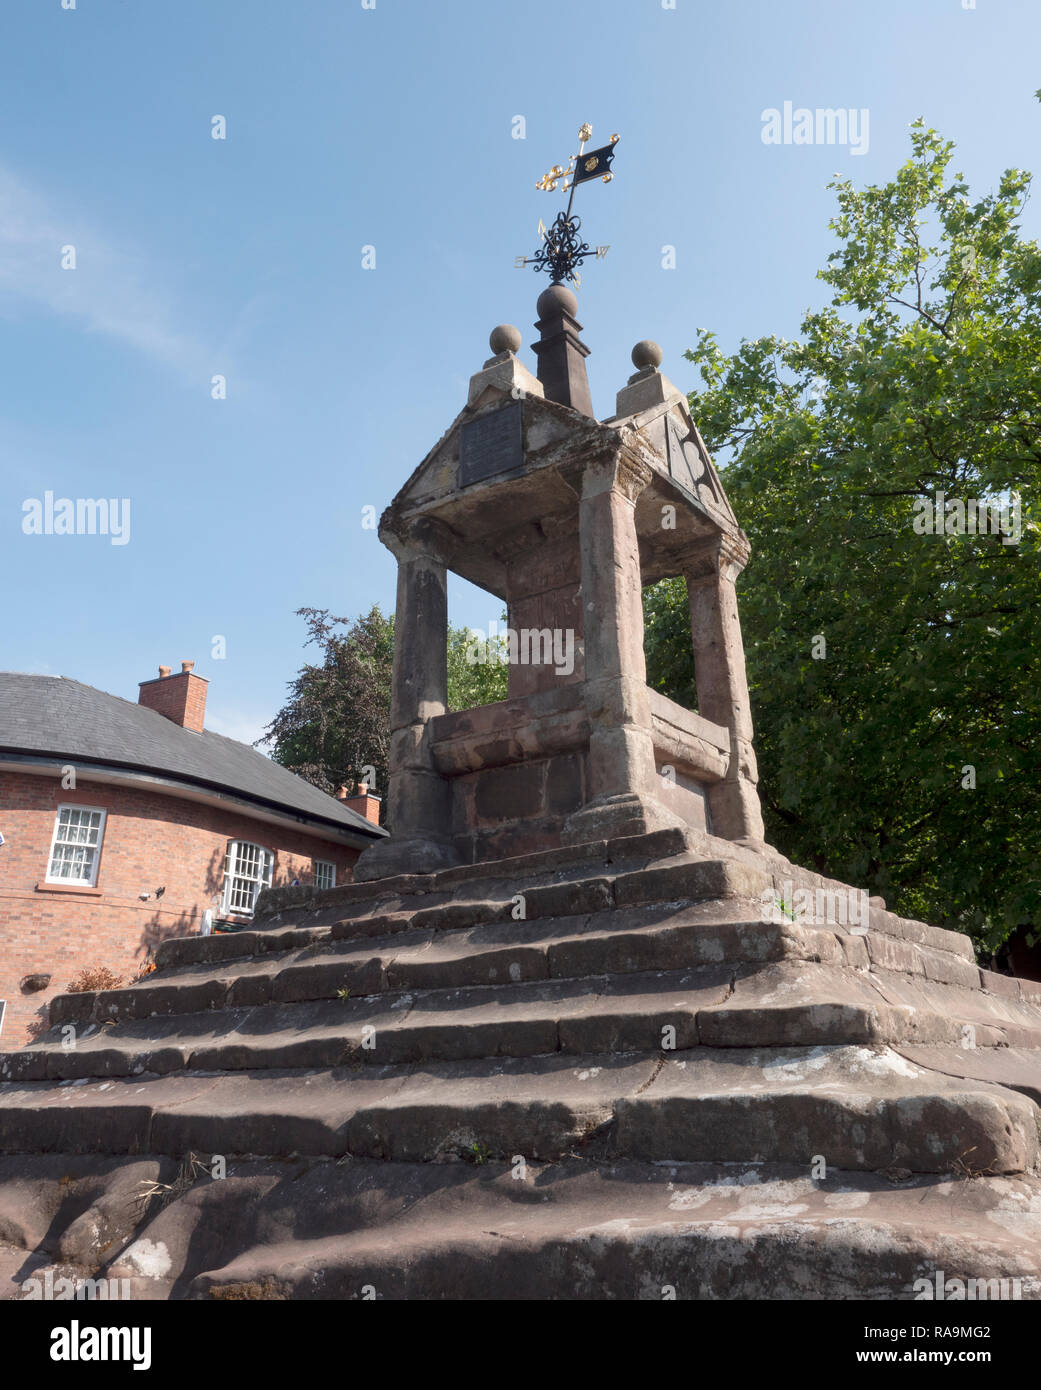 Lymm Cross at the centre of the village Lymm, Cheshire, England, UK. - Stock Image